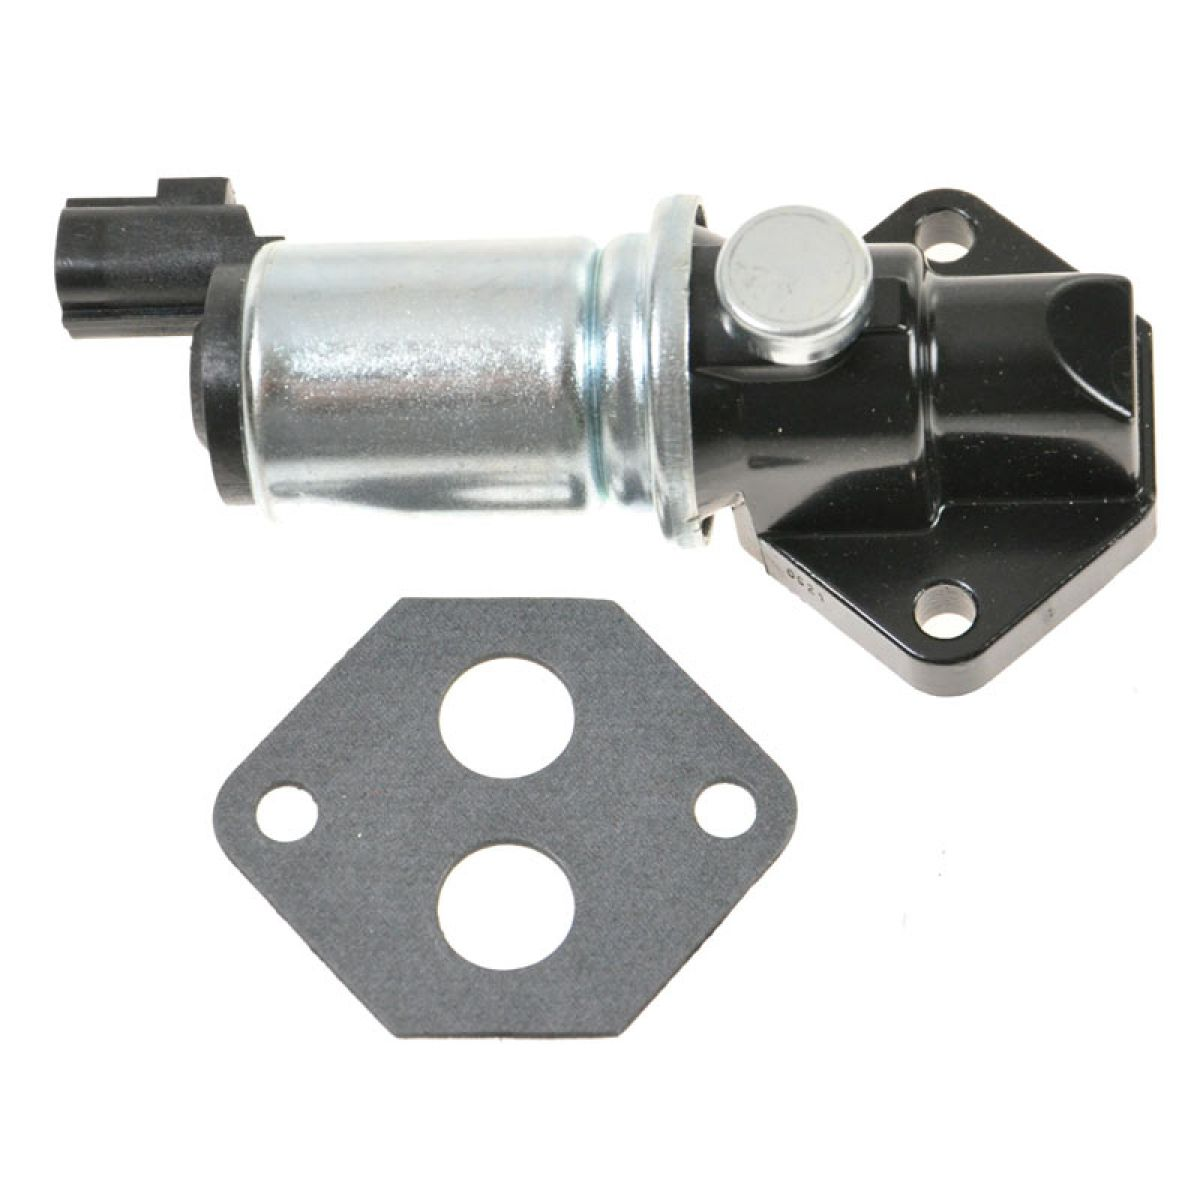 Details about IAC Idle Air Control Motor Valve for Ford Taurus Truck  Lincoln LS Mercury V6 V8